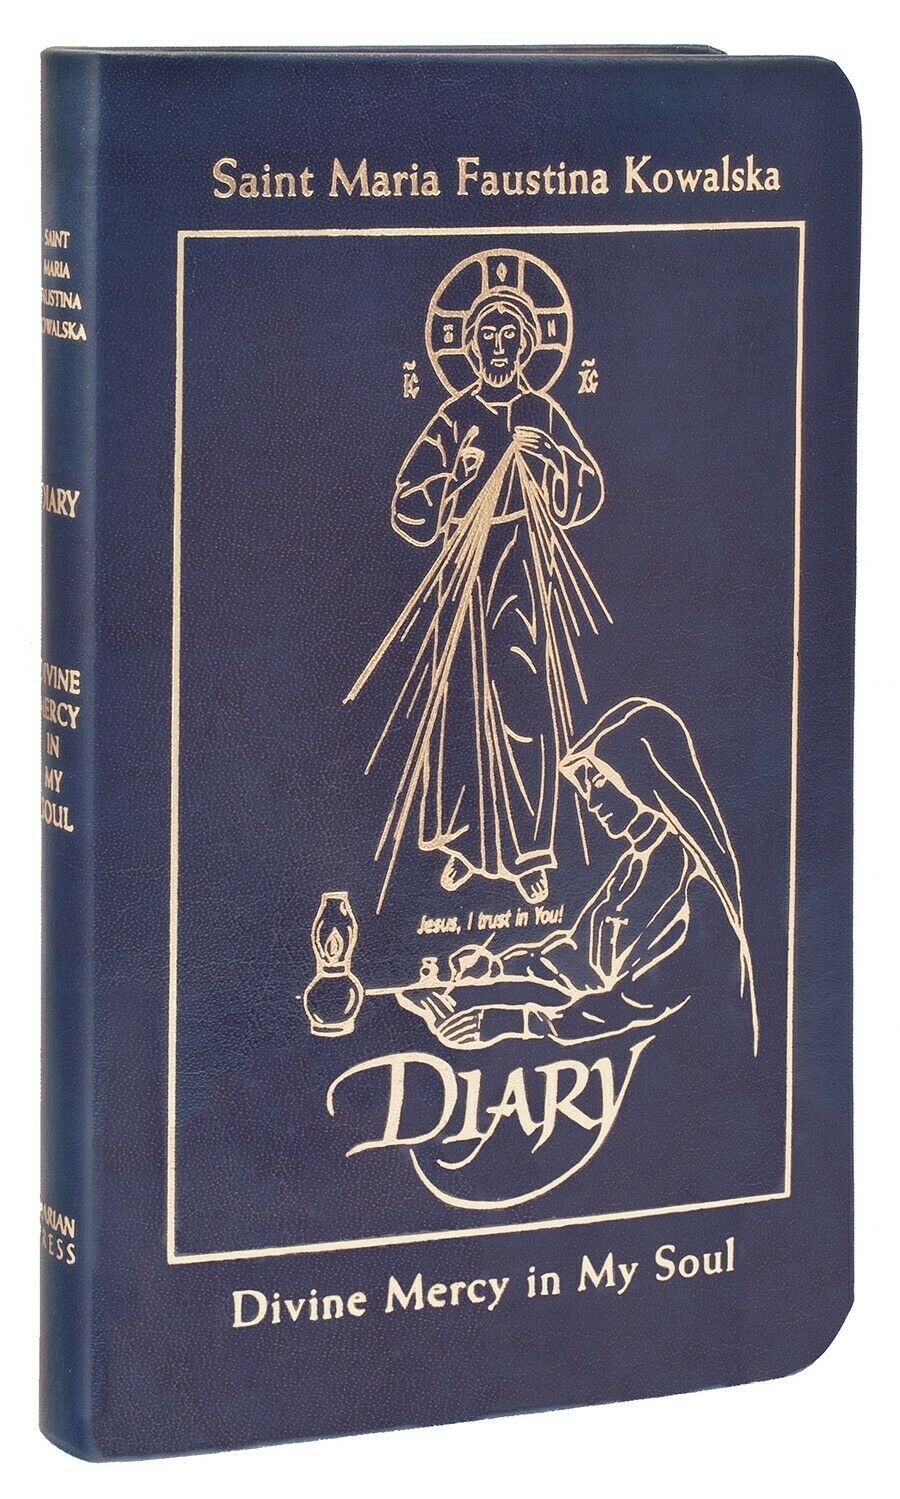 Diary of Saint Maria Faustina Kowalska Divine Mercy in My Soul (Blue Leather)